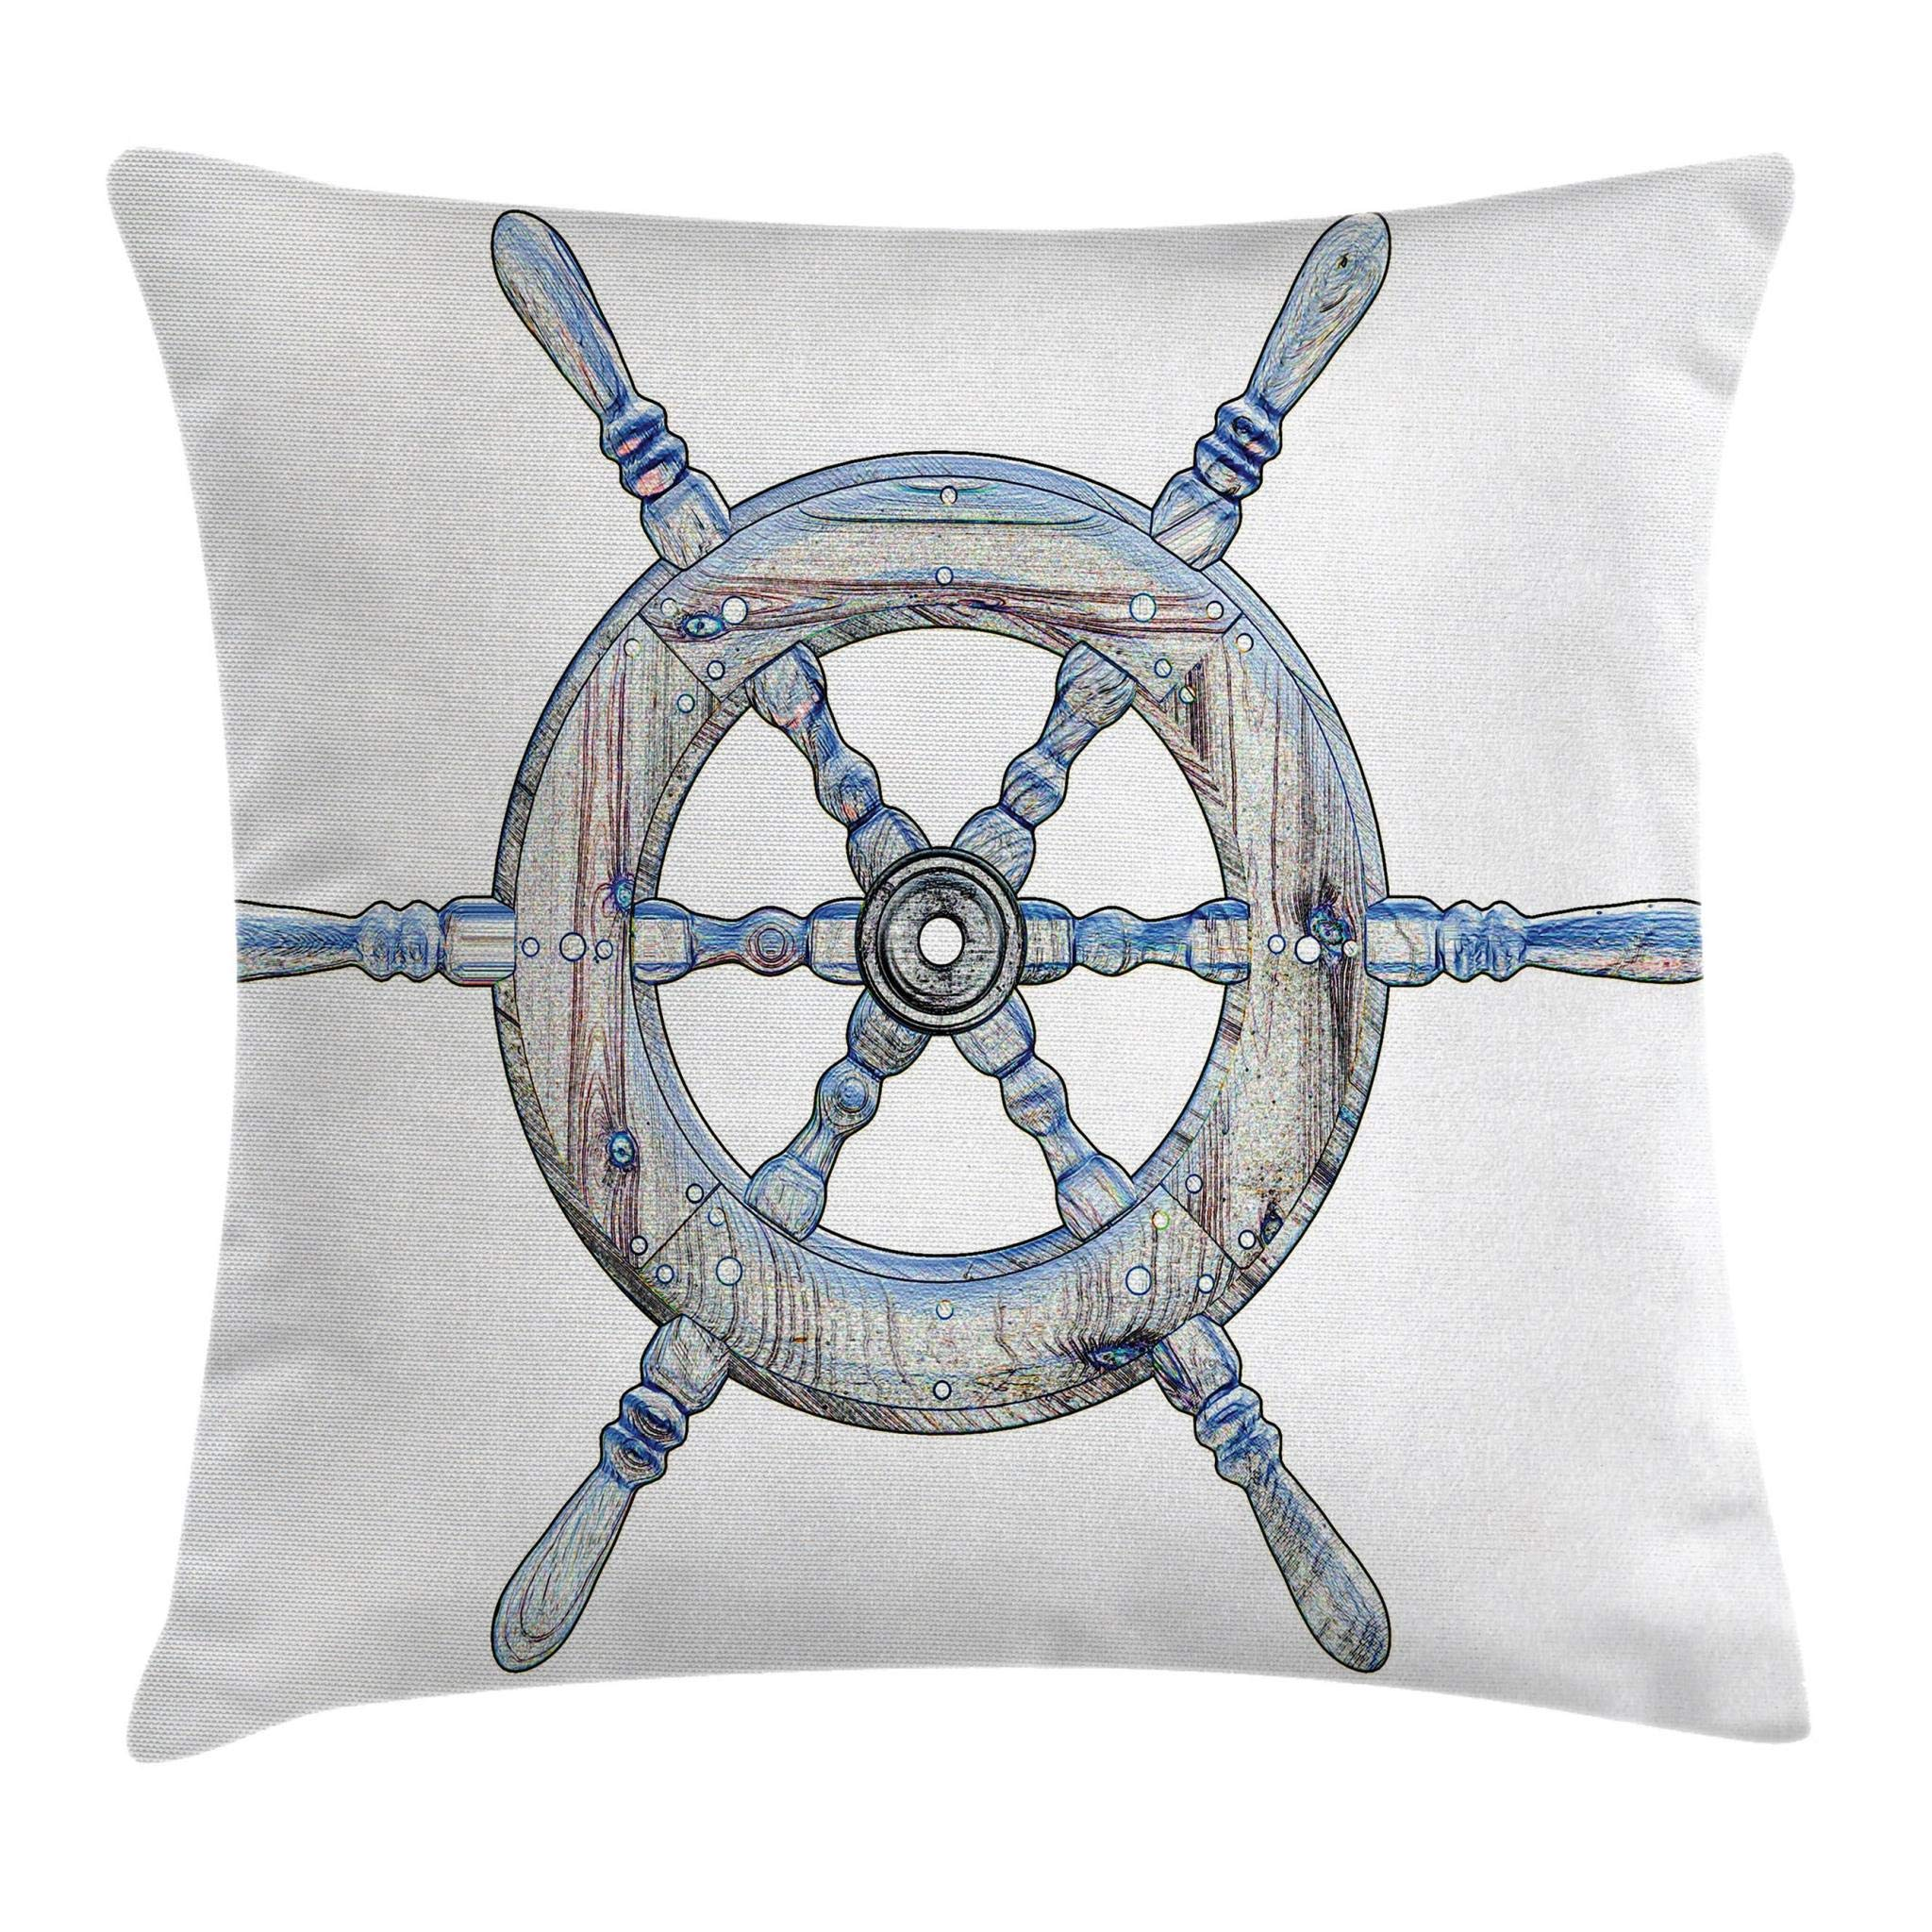 Ambesonne Nautical Throw Pillow Cushion Cover, Illustration of a Wooden Ship Wheel Over White Backdrop Sail Exploring Ocean Theme, Decorative Square Accent Pillow Case, 16'' X 16'', White Blue by Ambesonne